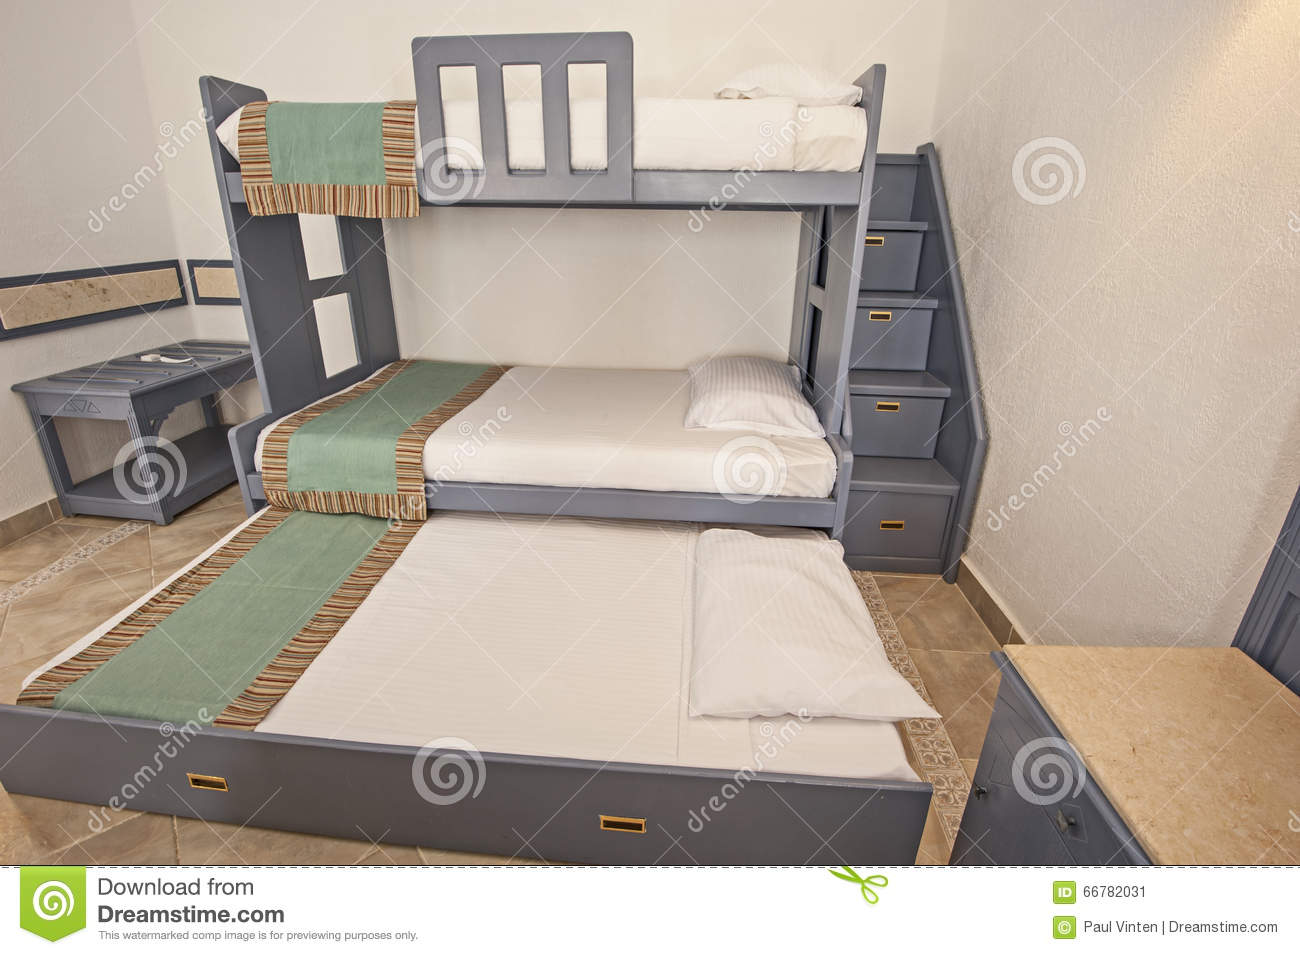 Bunk Bed Family Bedroom Concept Idea Stock Image Image Of Wall White 66782031